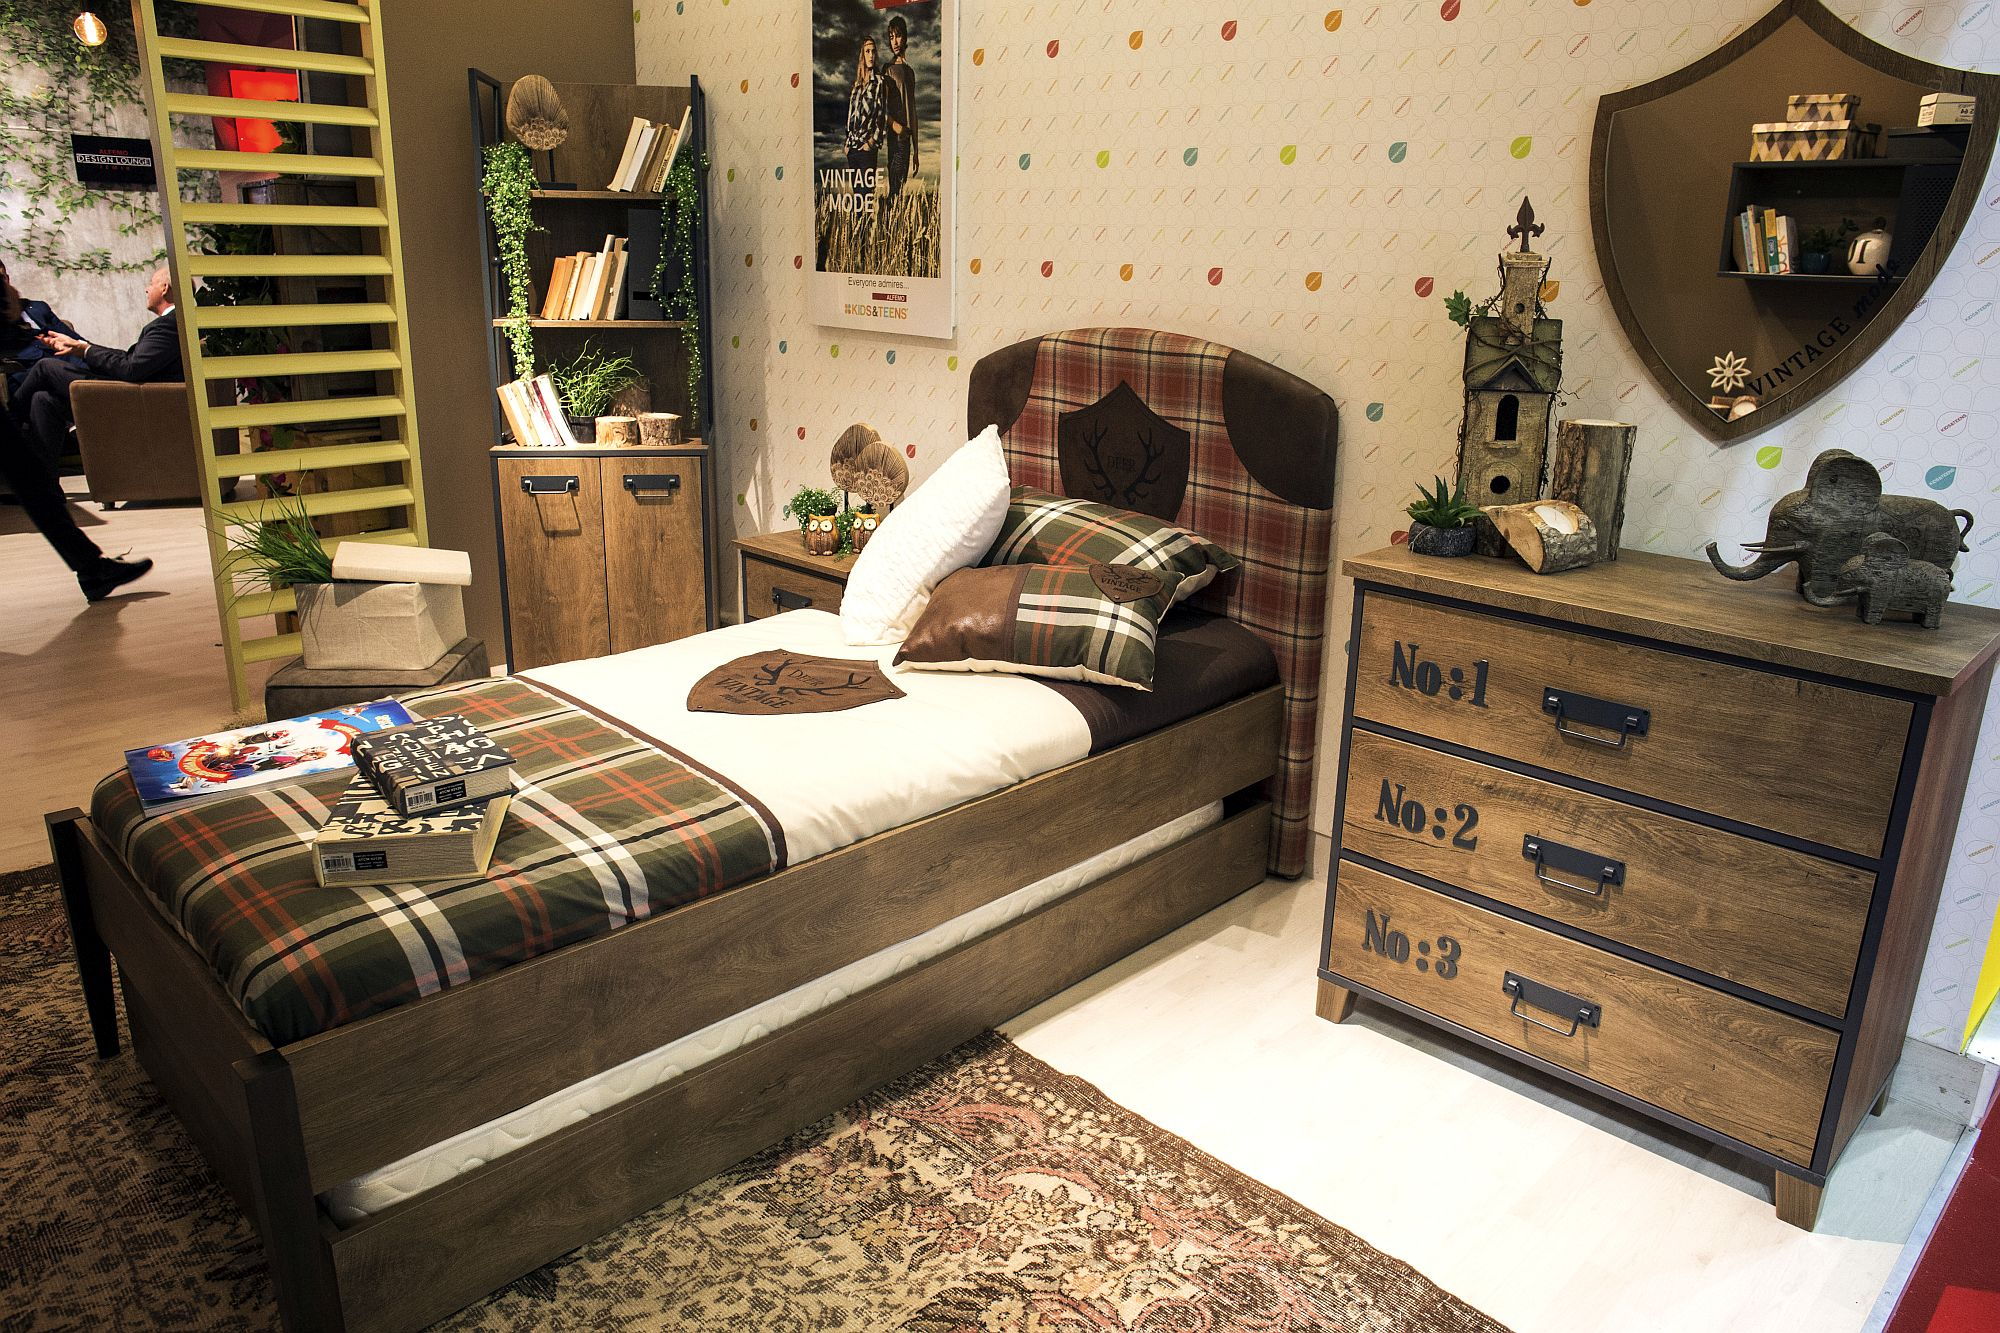 Wood along with classic English patterns give the kids' room a timeless look